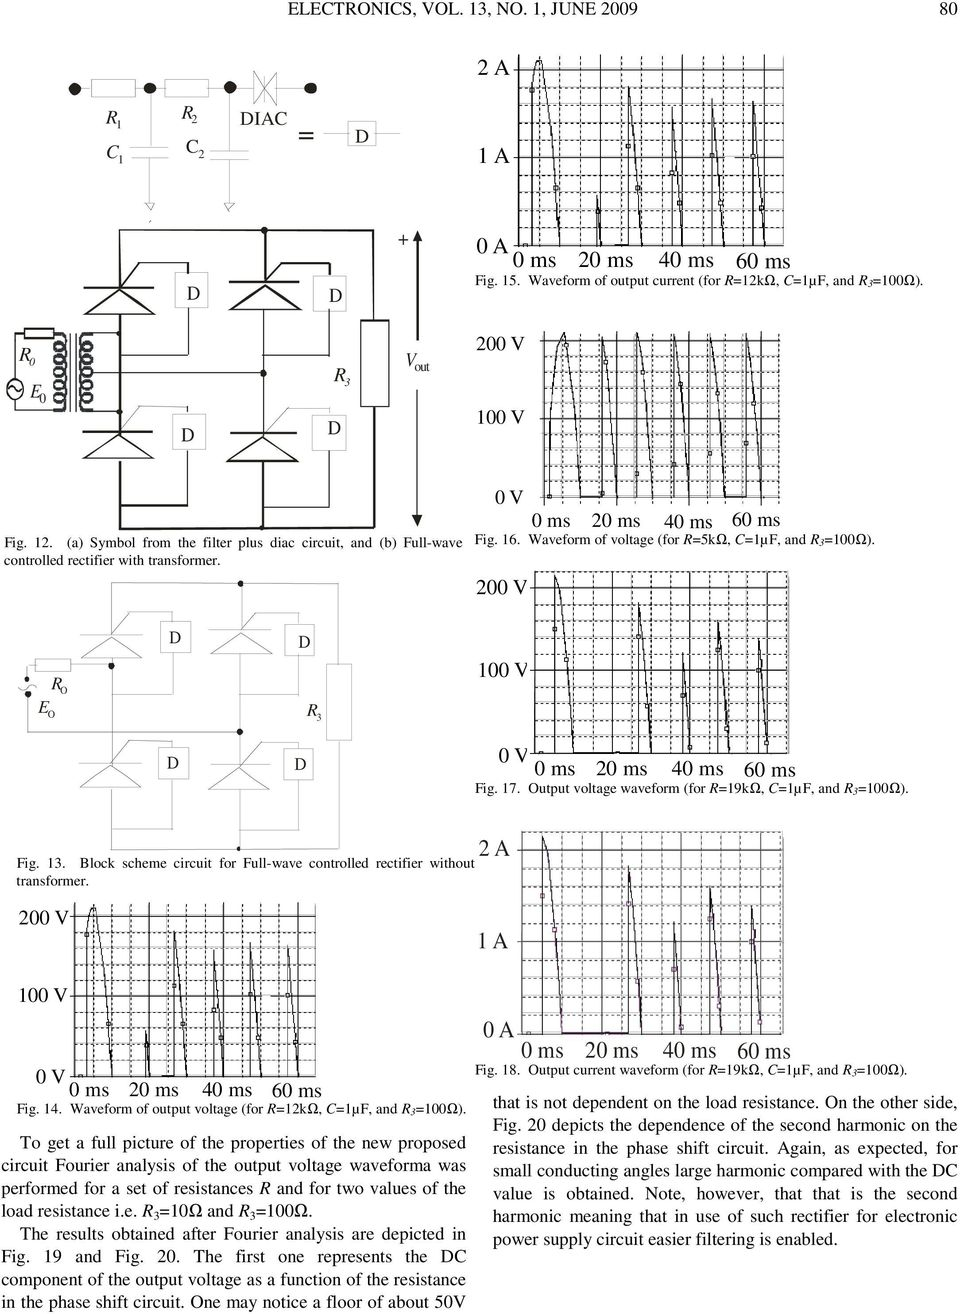 A Thyristor Full Wave Rectifier With Control Of The Conducting Notes And Details Diode Circuit Often Block Scheme For Ull Controlled Without Transformer 1